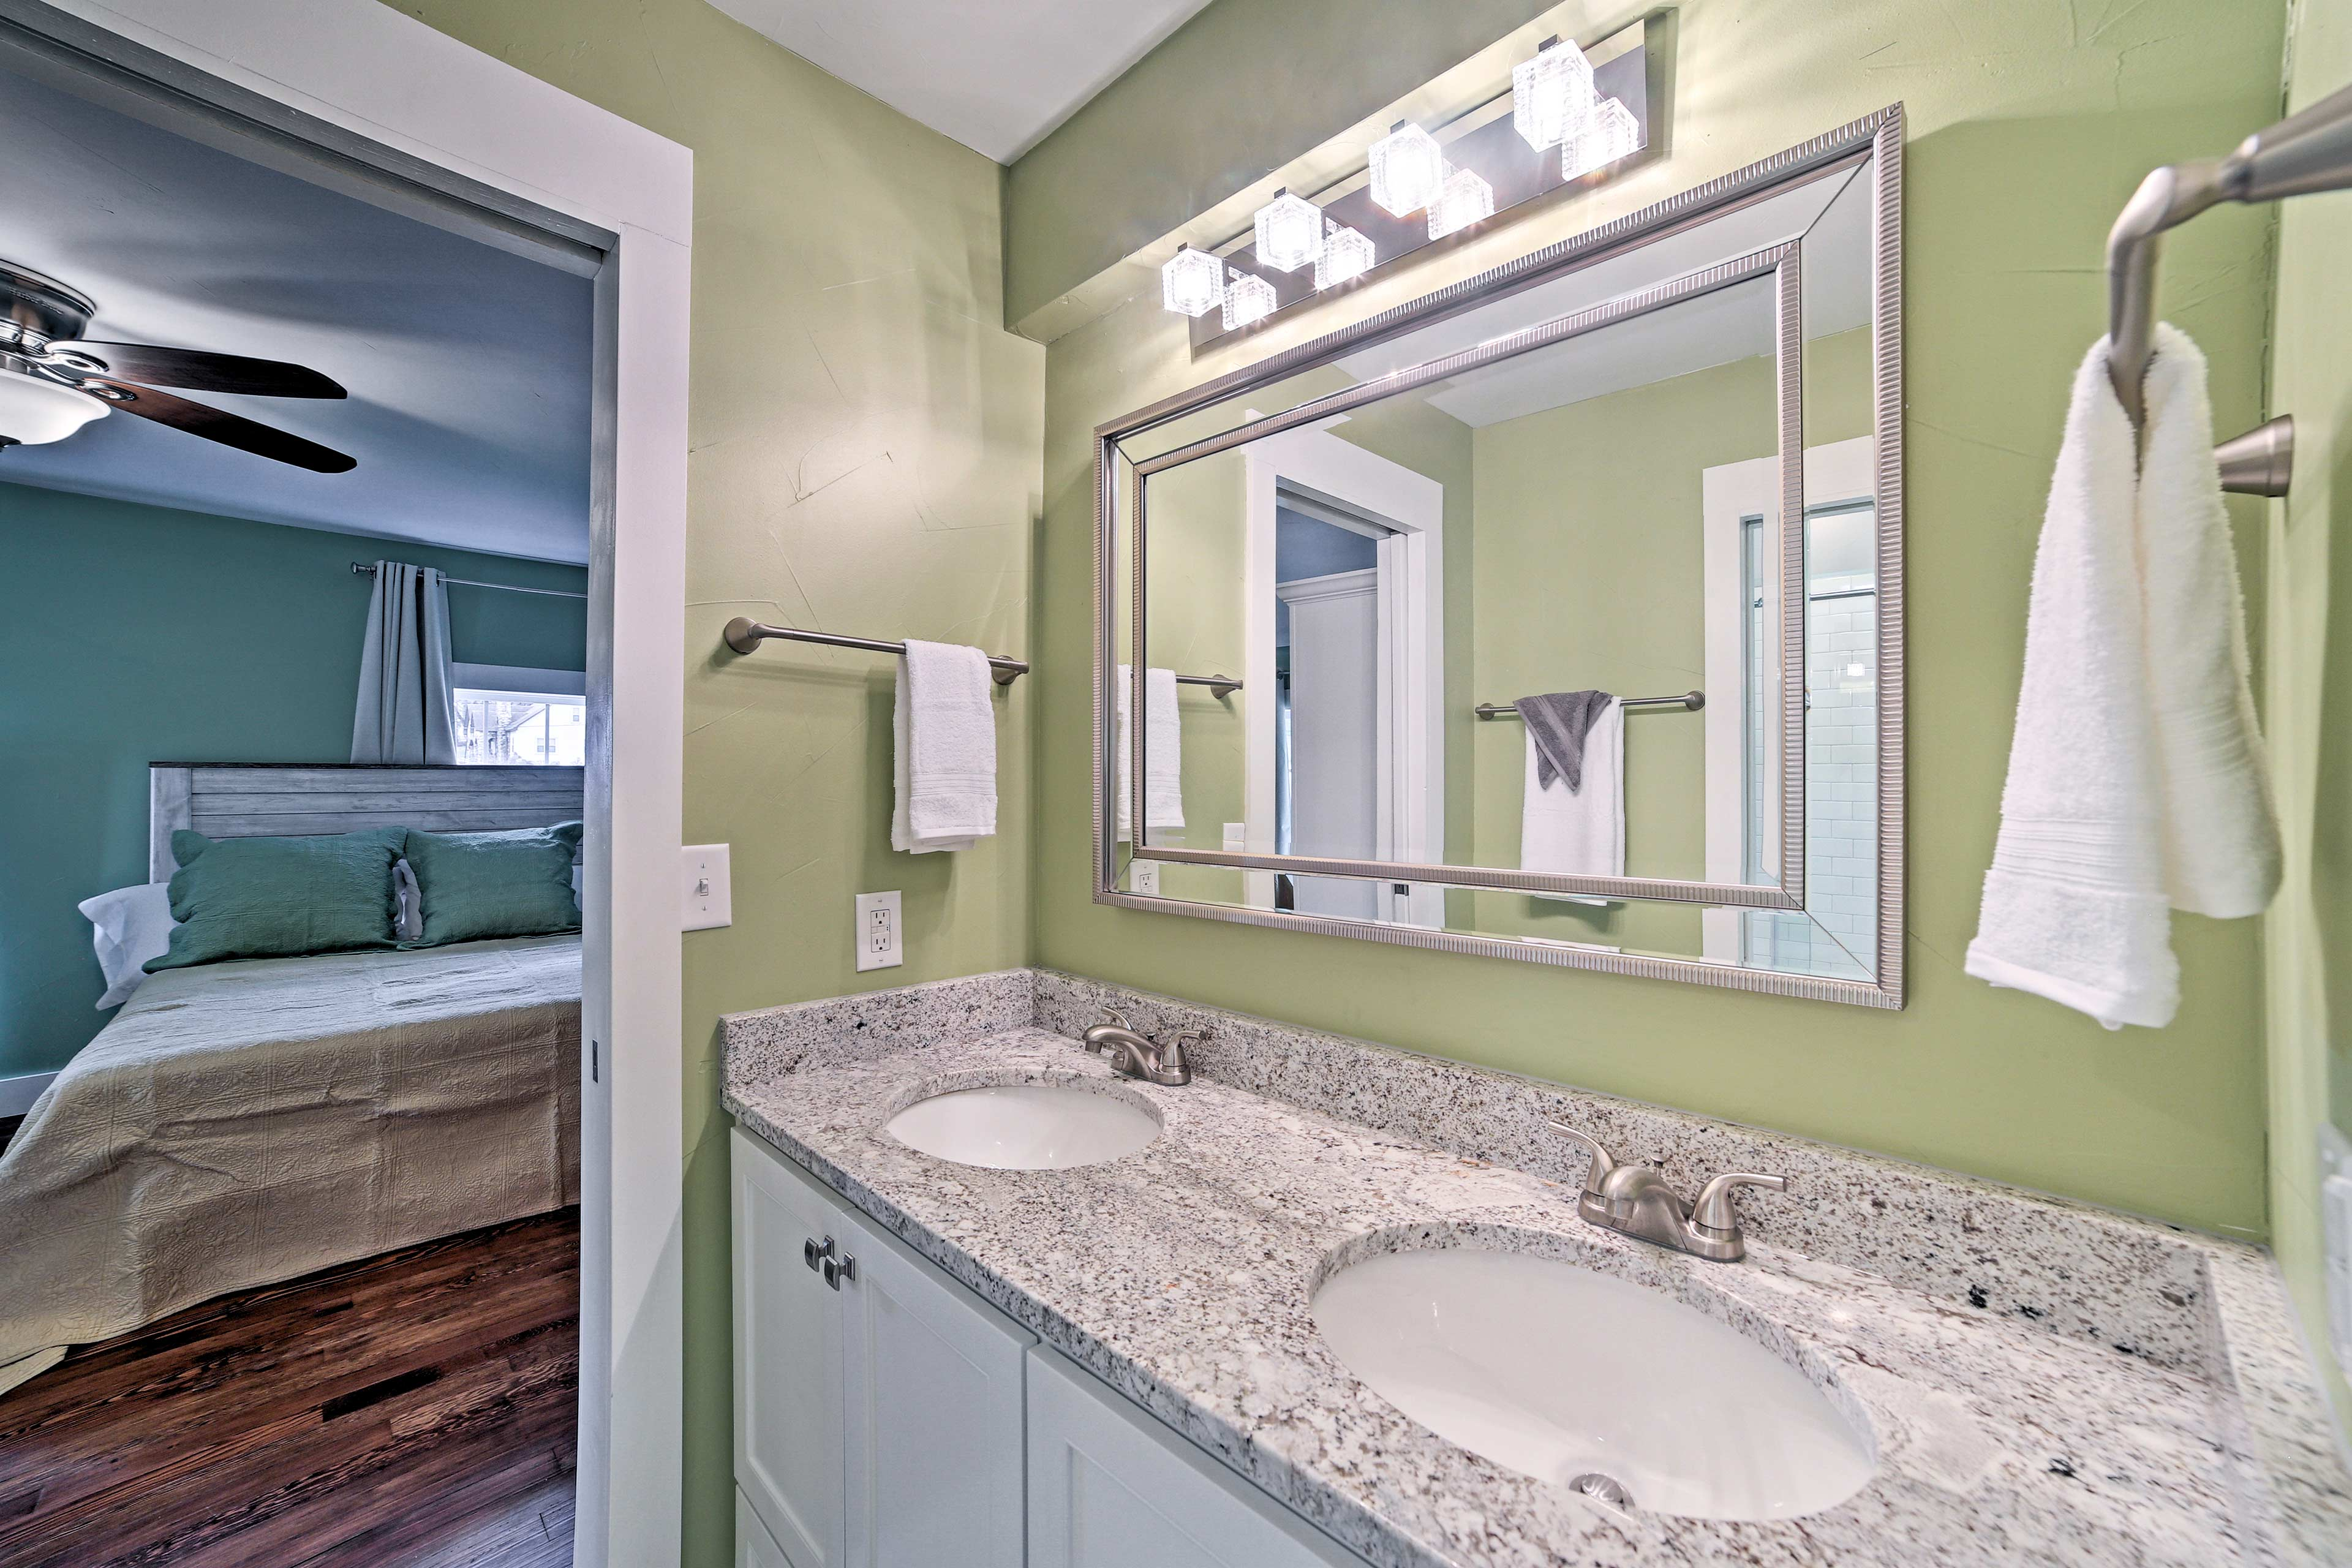 Share this Jack-and-Jill bathroom.